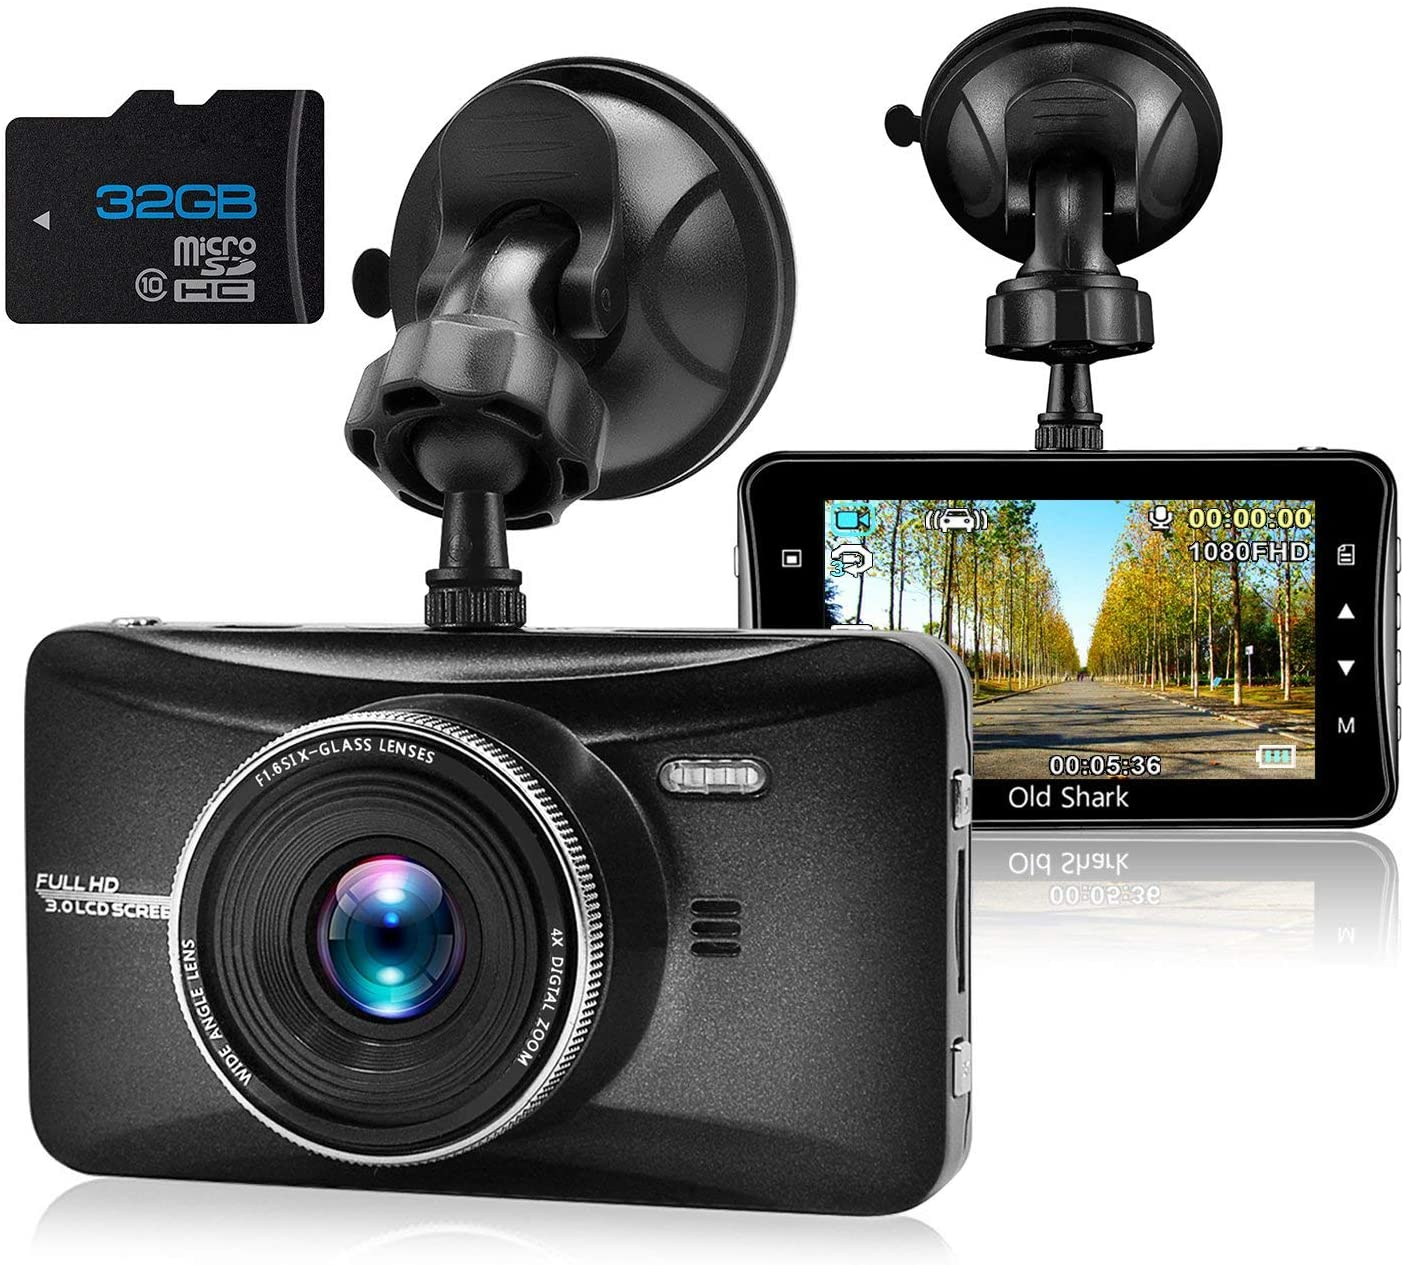 Motion Detection 170/° Wide Angle Car Dash Cam 1080P Full HD Dash Camera for Cars Recorder Include 16GB Micro SD Card G-Sensor Loop Recording,OBD Port Clear Night Vision Parking Monitoring